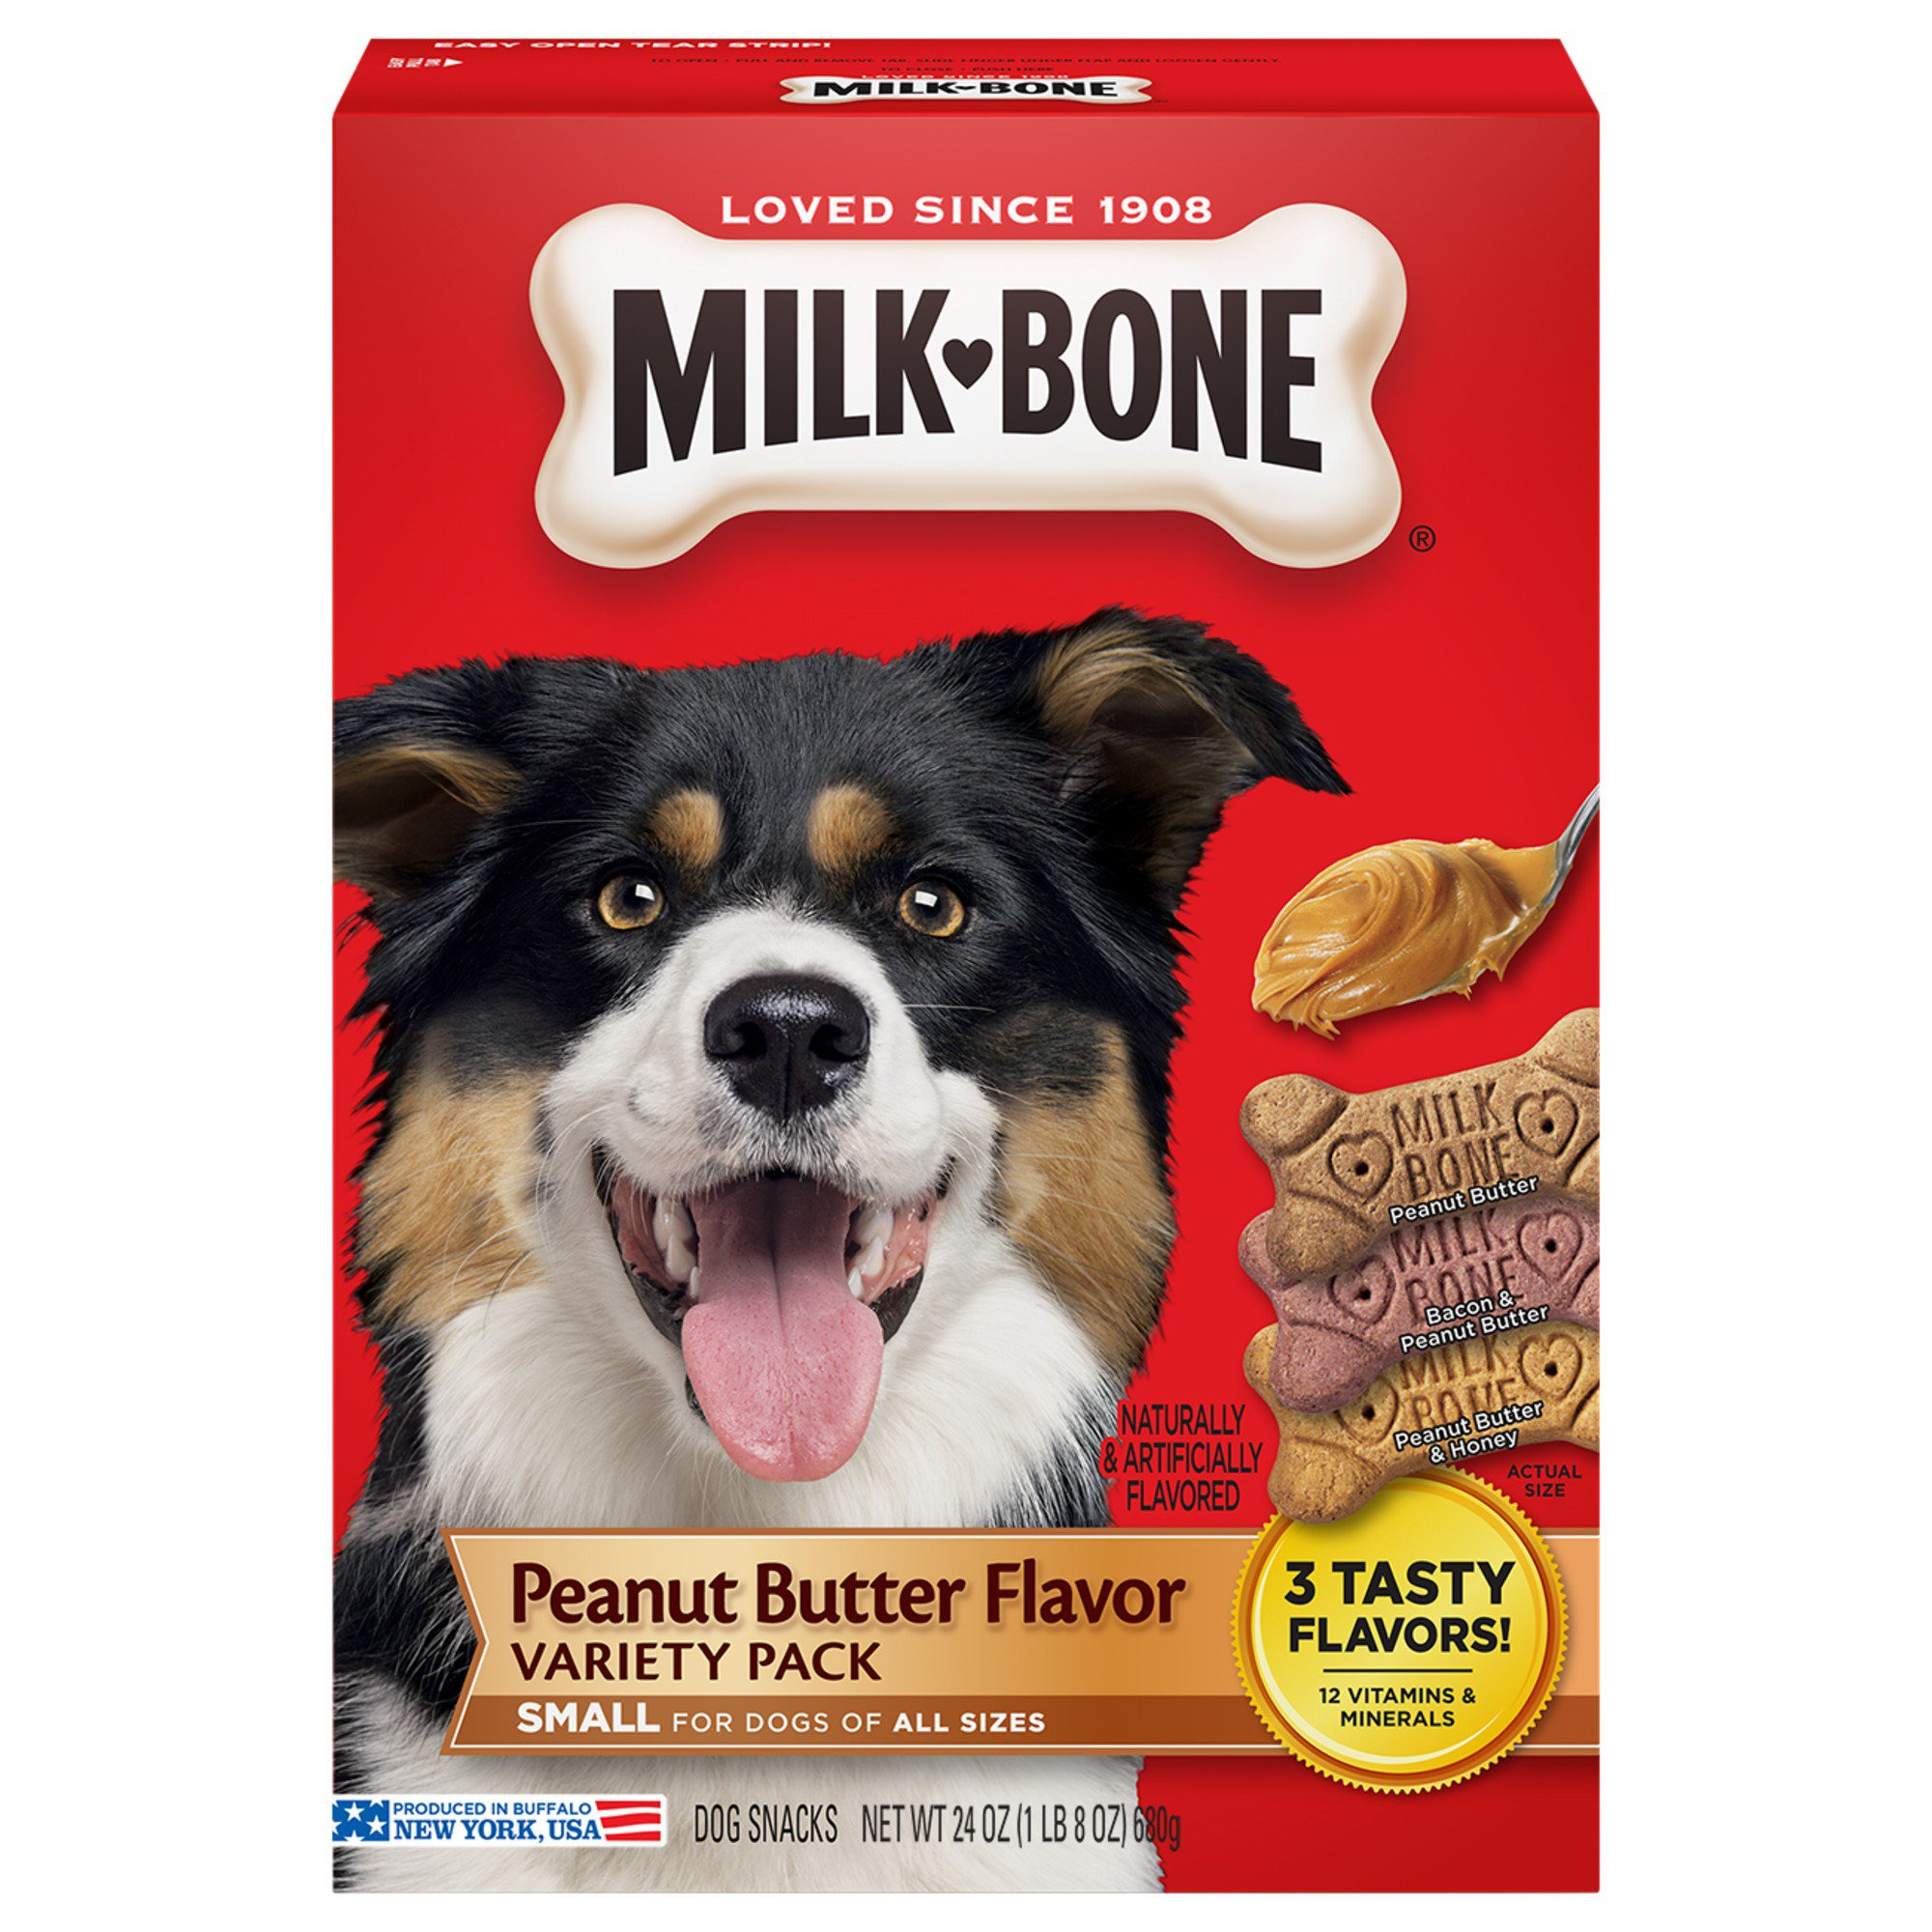 Milk-Bone Peanut Butter Flavor Small/Medium Dog Treats Variety Pack